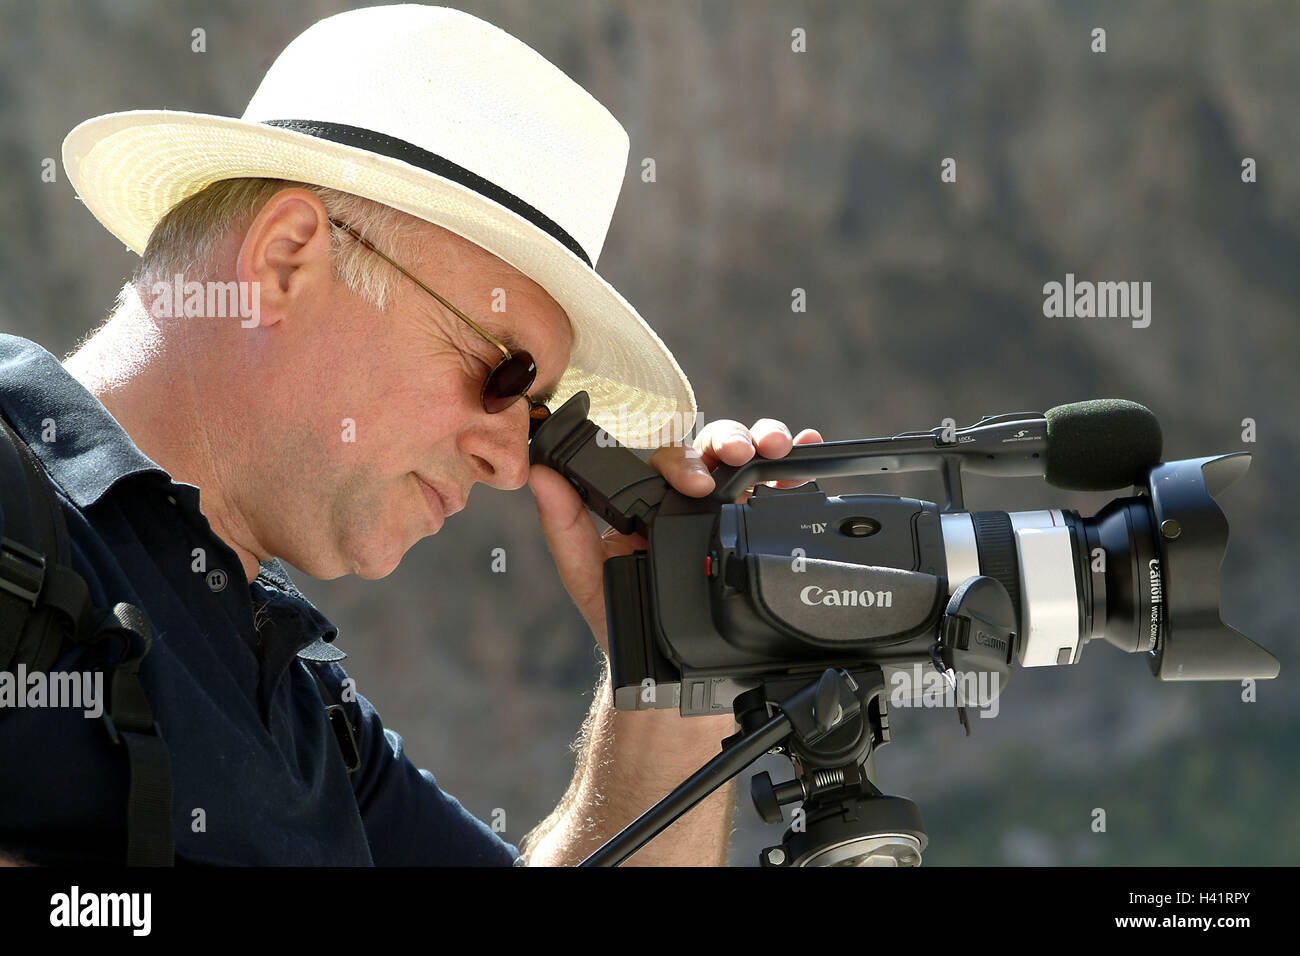 Man, side view, view, viewfinders, DP camera, tread, care, headgear, straw hat, glasses, sunglasses, hobby, leisure - Stock Image